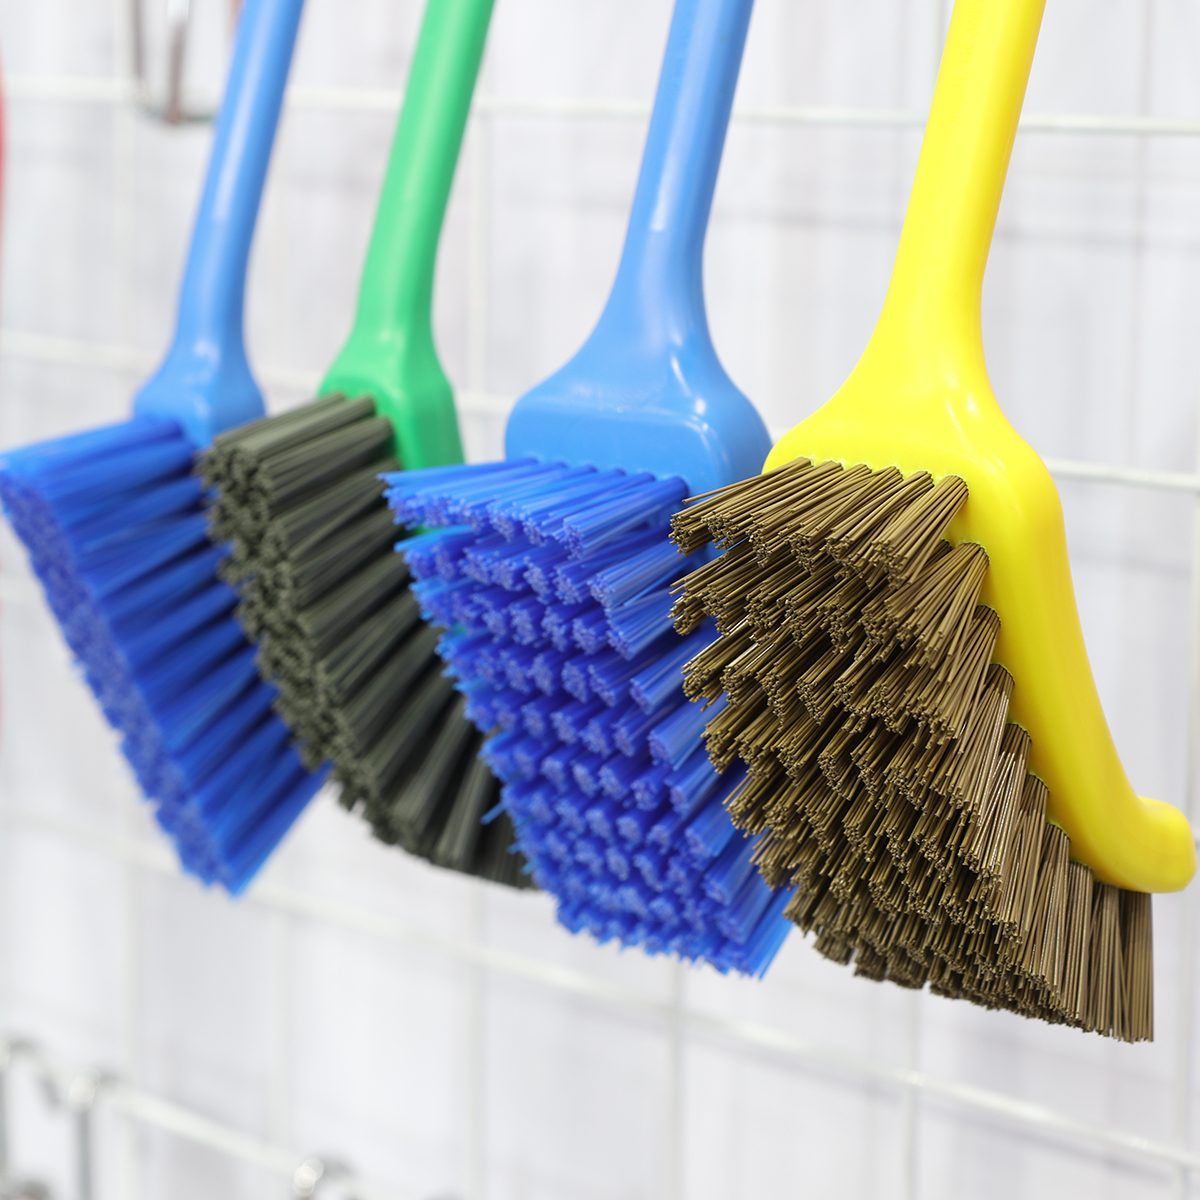 plastic cleaning brushes in supermarket hanger ; close up